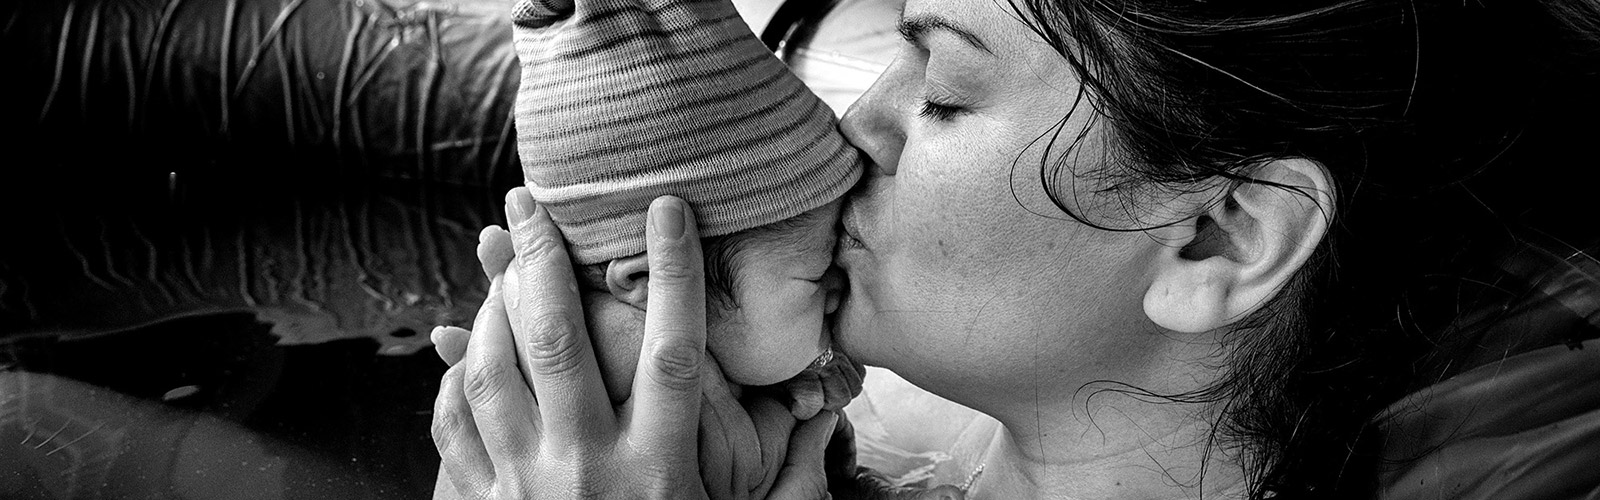 A woman in a birthing pool holds her new born baby, her eyes are closed and she is kissing its forehead tenderly. The baby is wearing a stripy knitted hat.